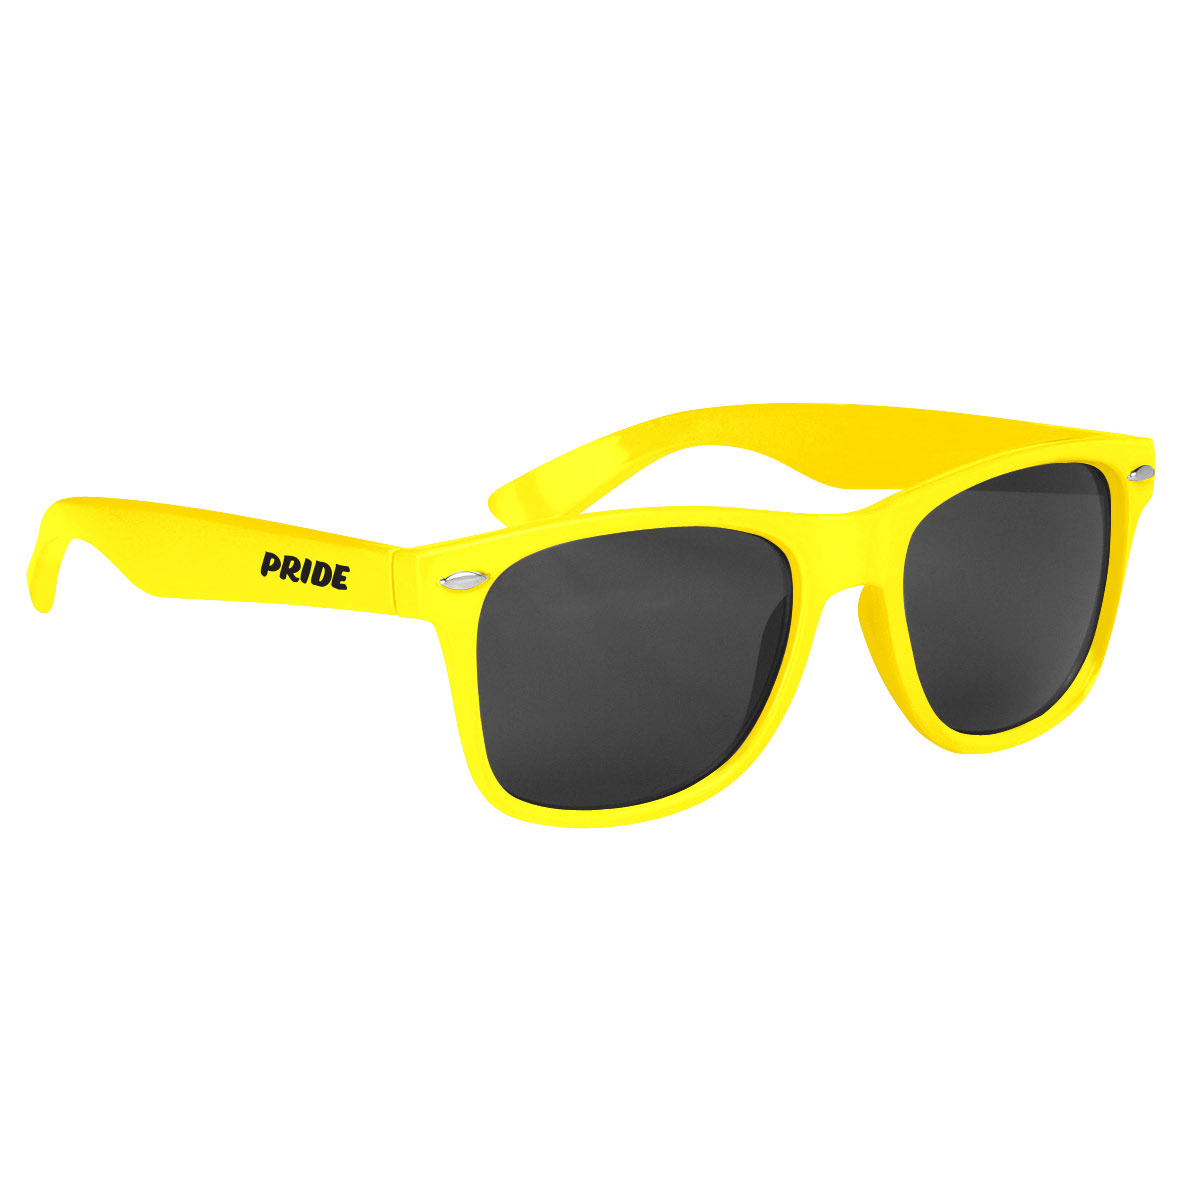 315512 lehua sunglasses one color imprint two sides